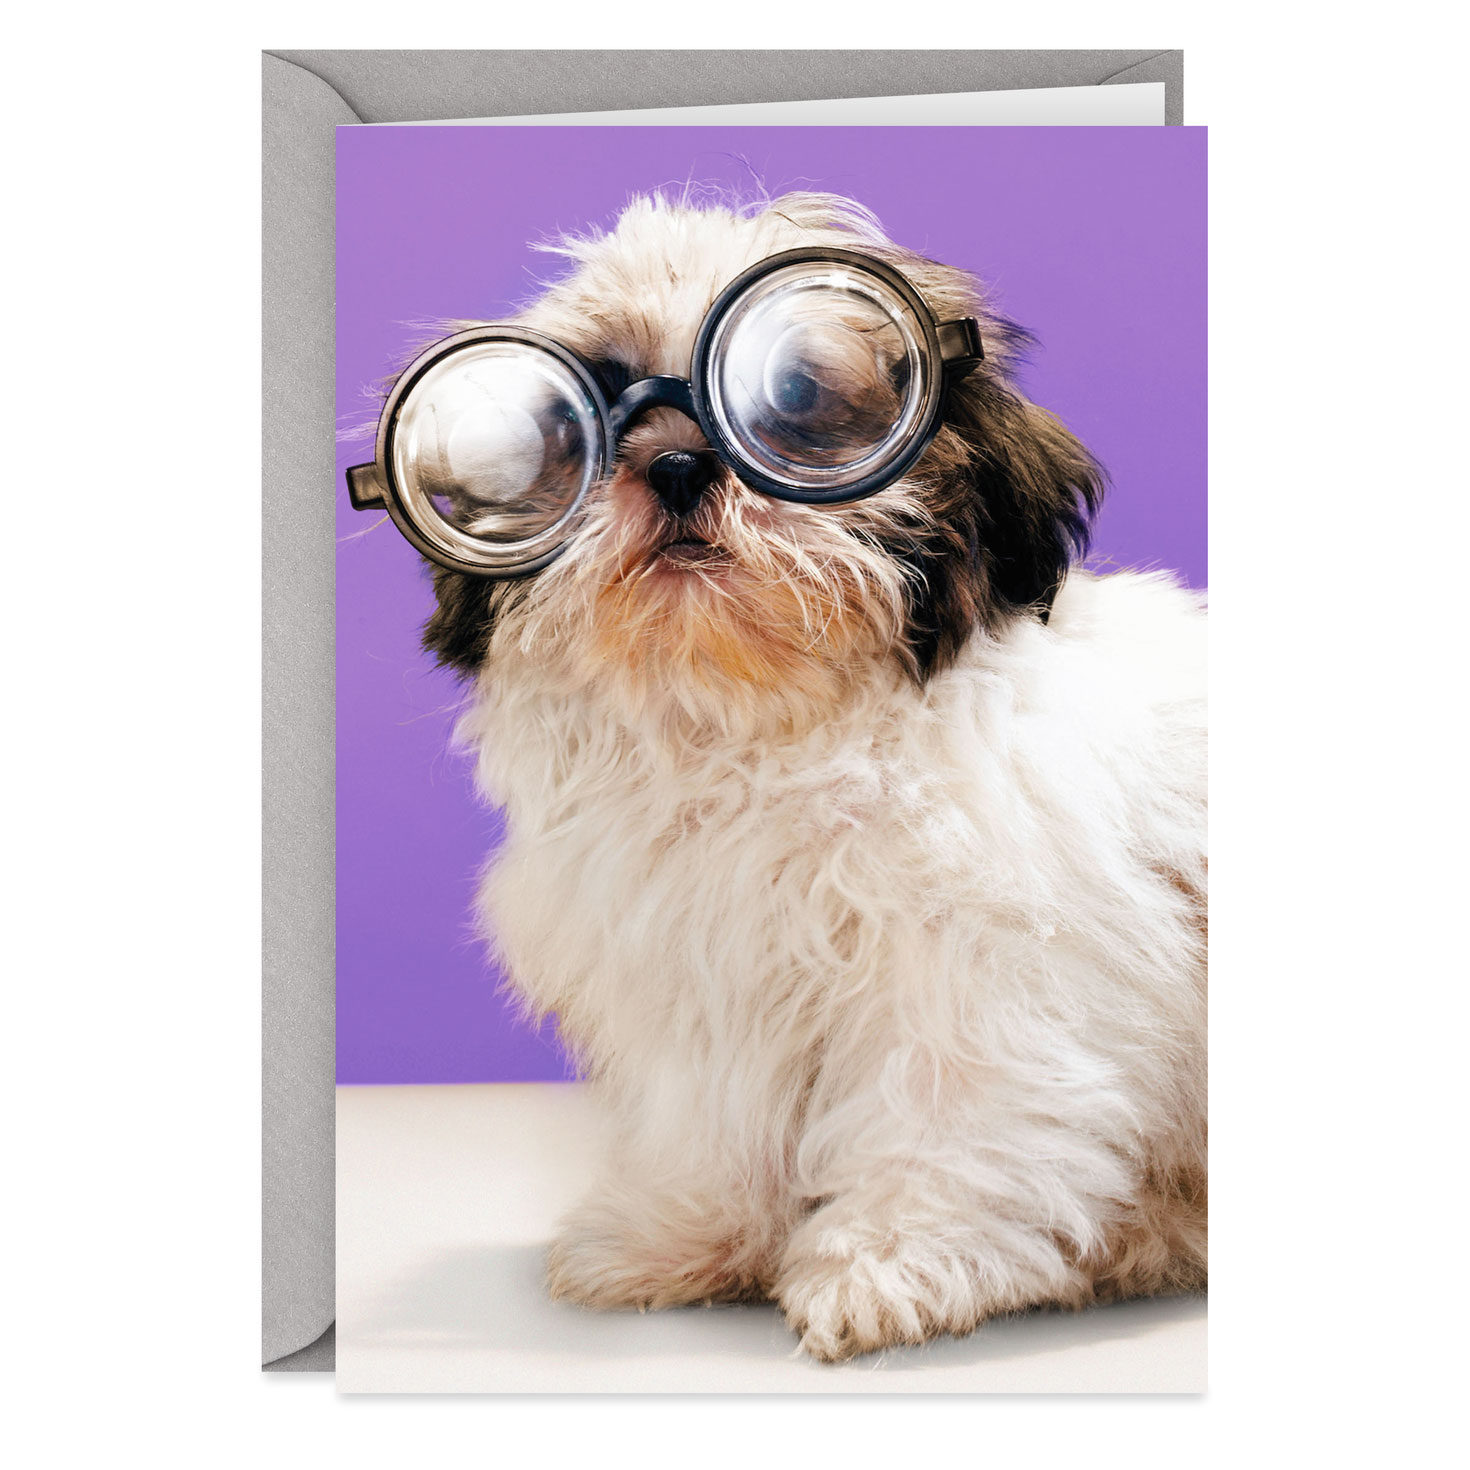 4 greeting cards star bright small dog